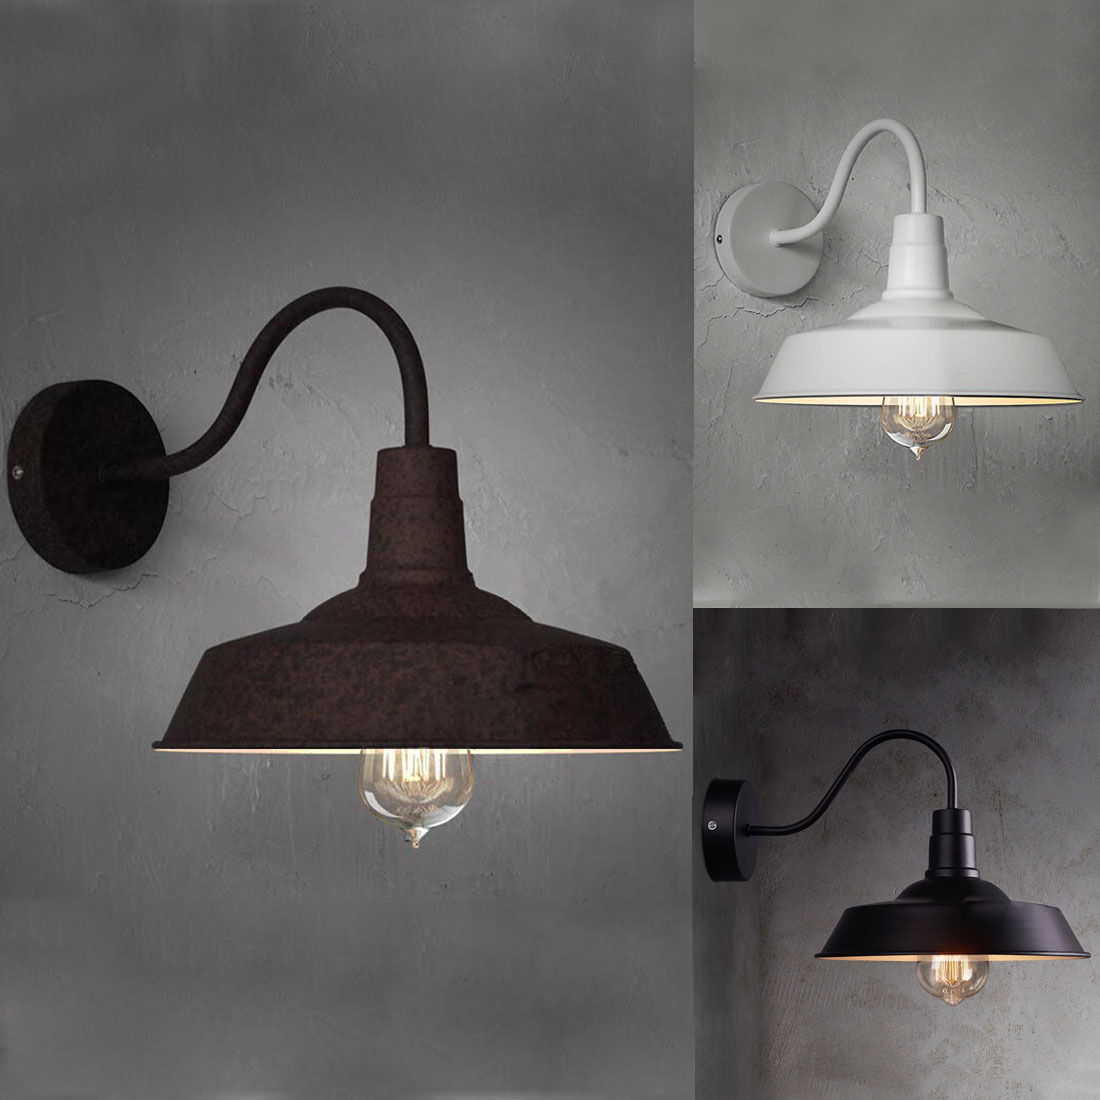 White/Black Vintage Loft Industrial Style Barn Gooseneck Big Wall Lamp Sconce